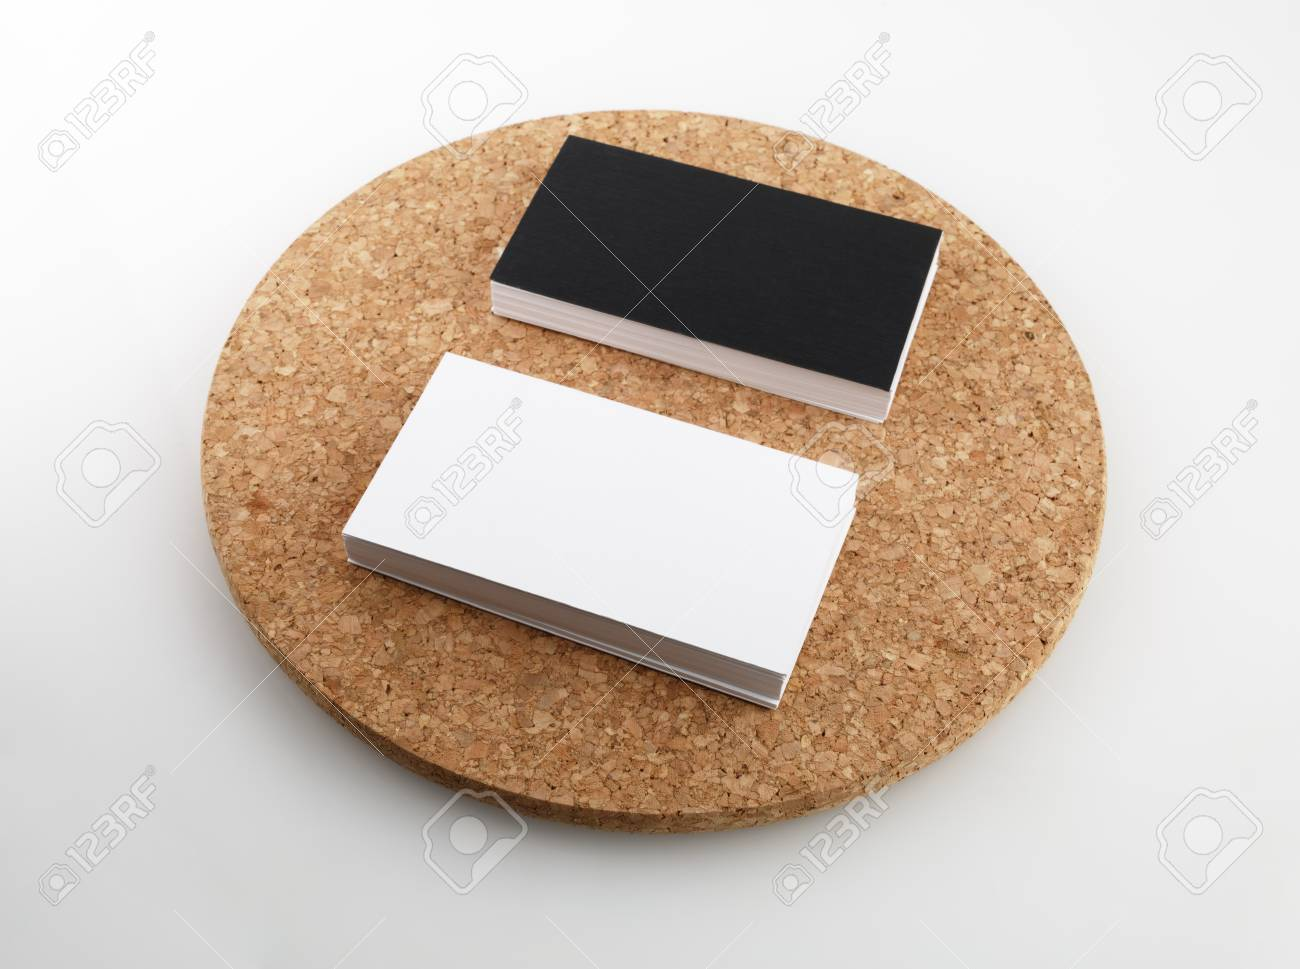 Black And White Business Cards On A Round Cork Base. Stock Photo ...